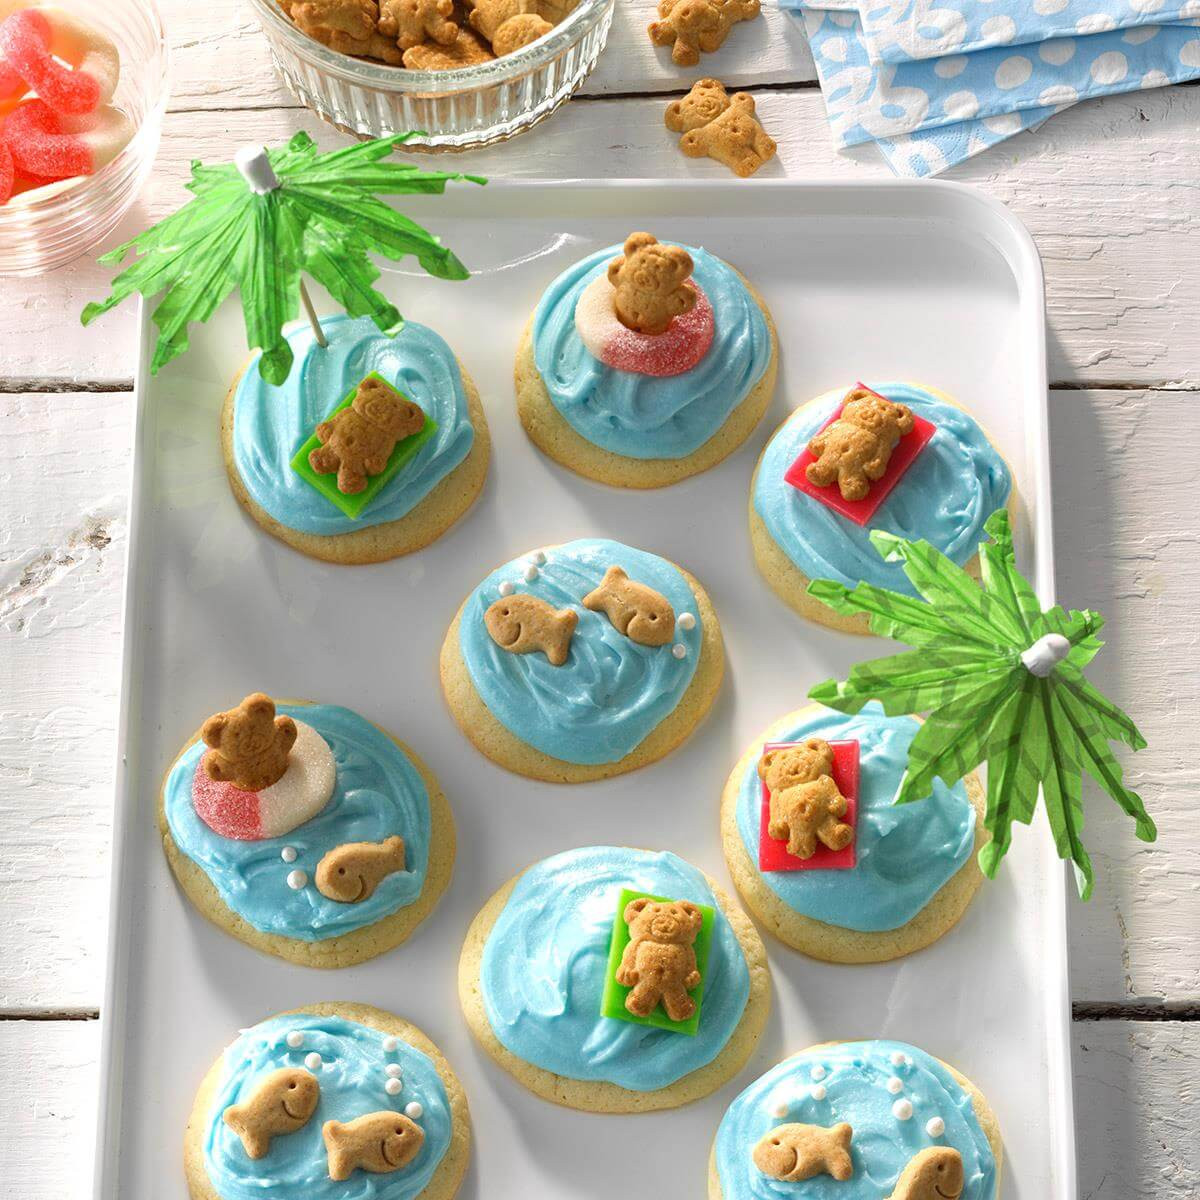 Pool Party Appetizer Ideas  29 Recipes to Make for Summer Pool Parties